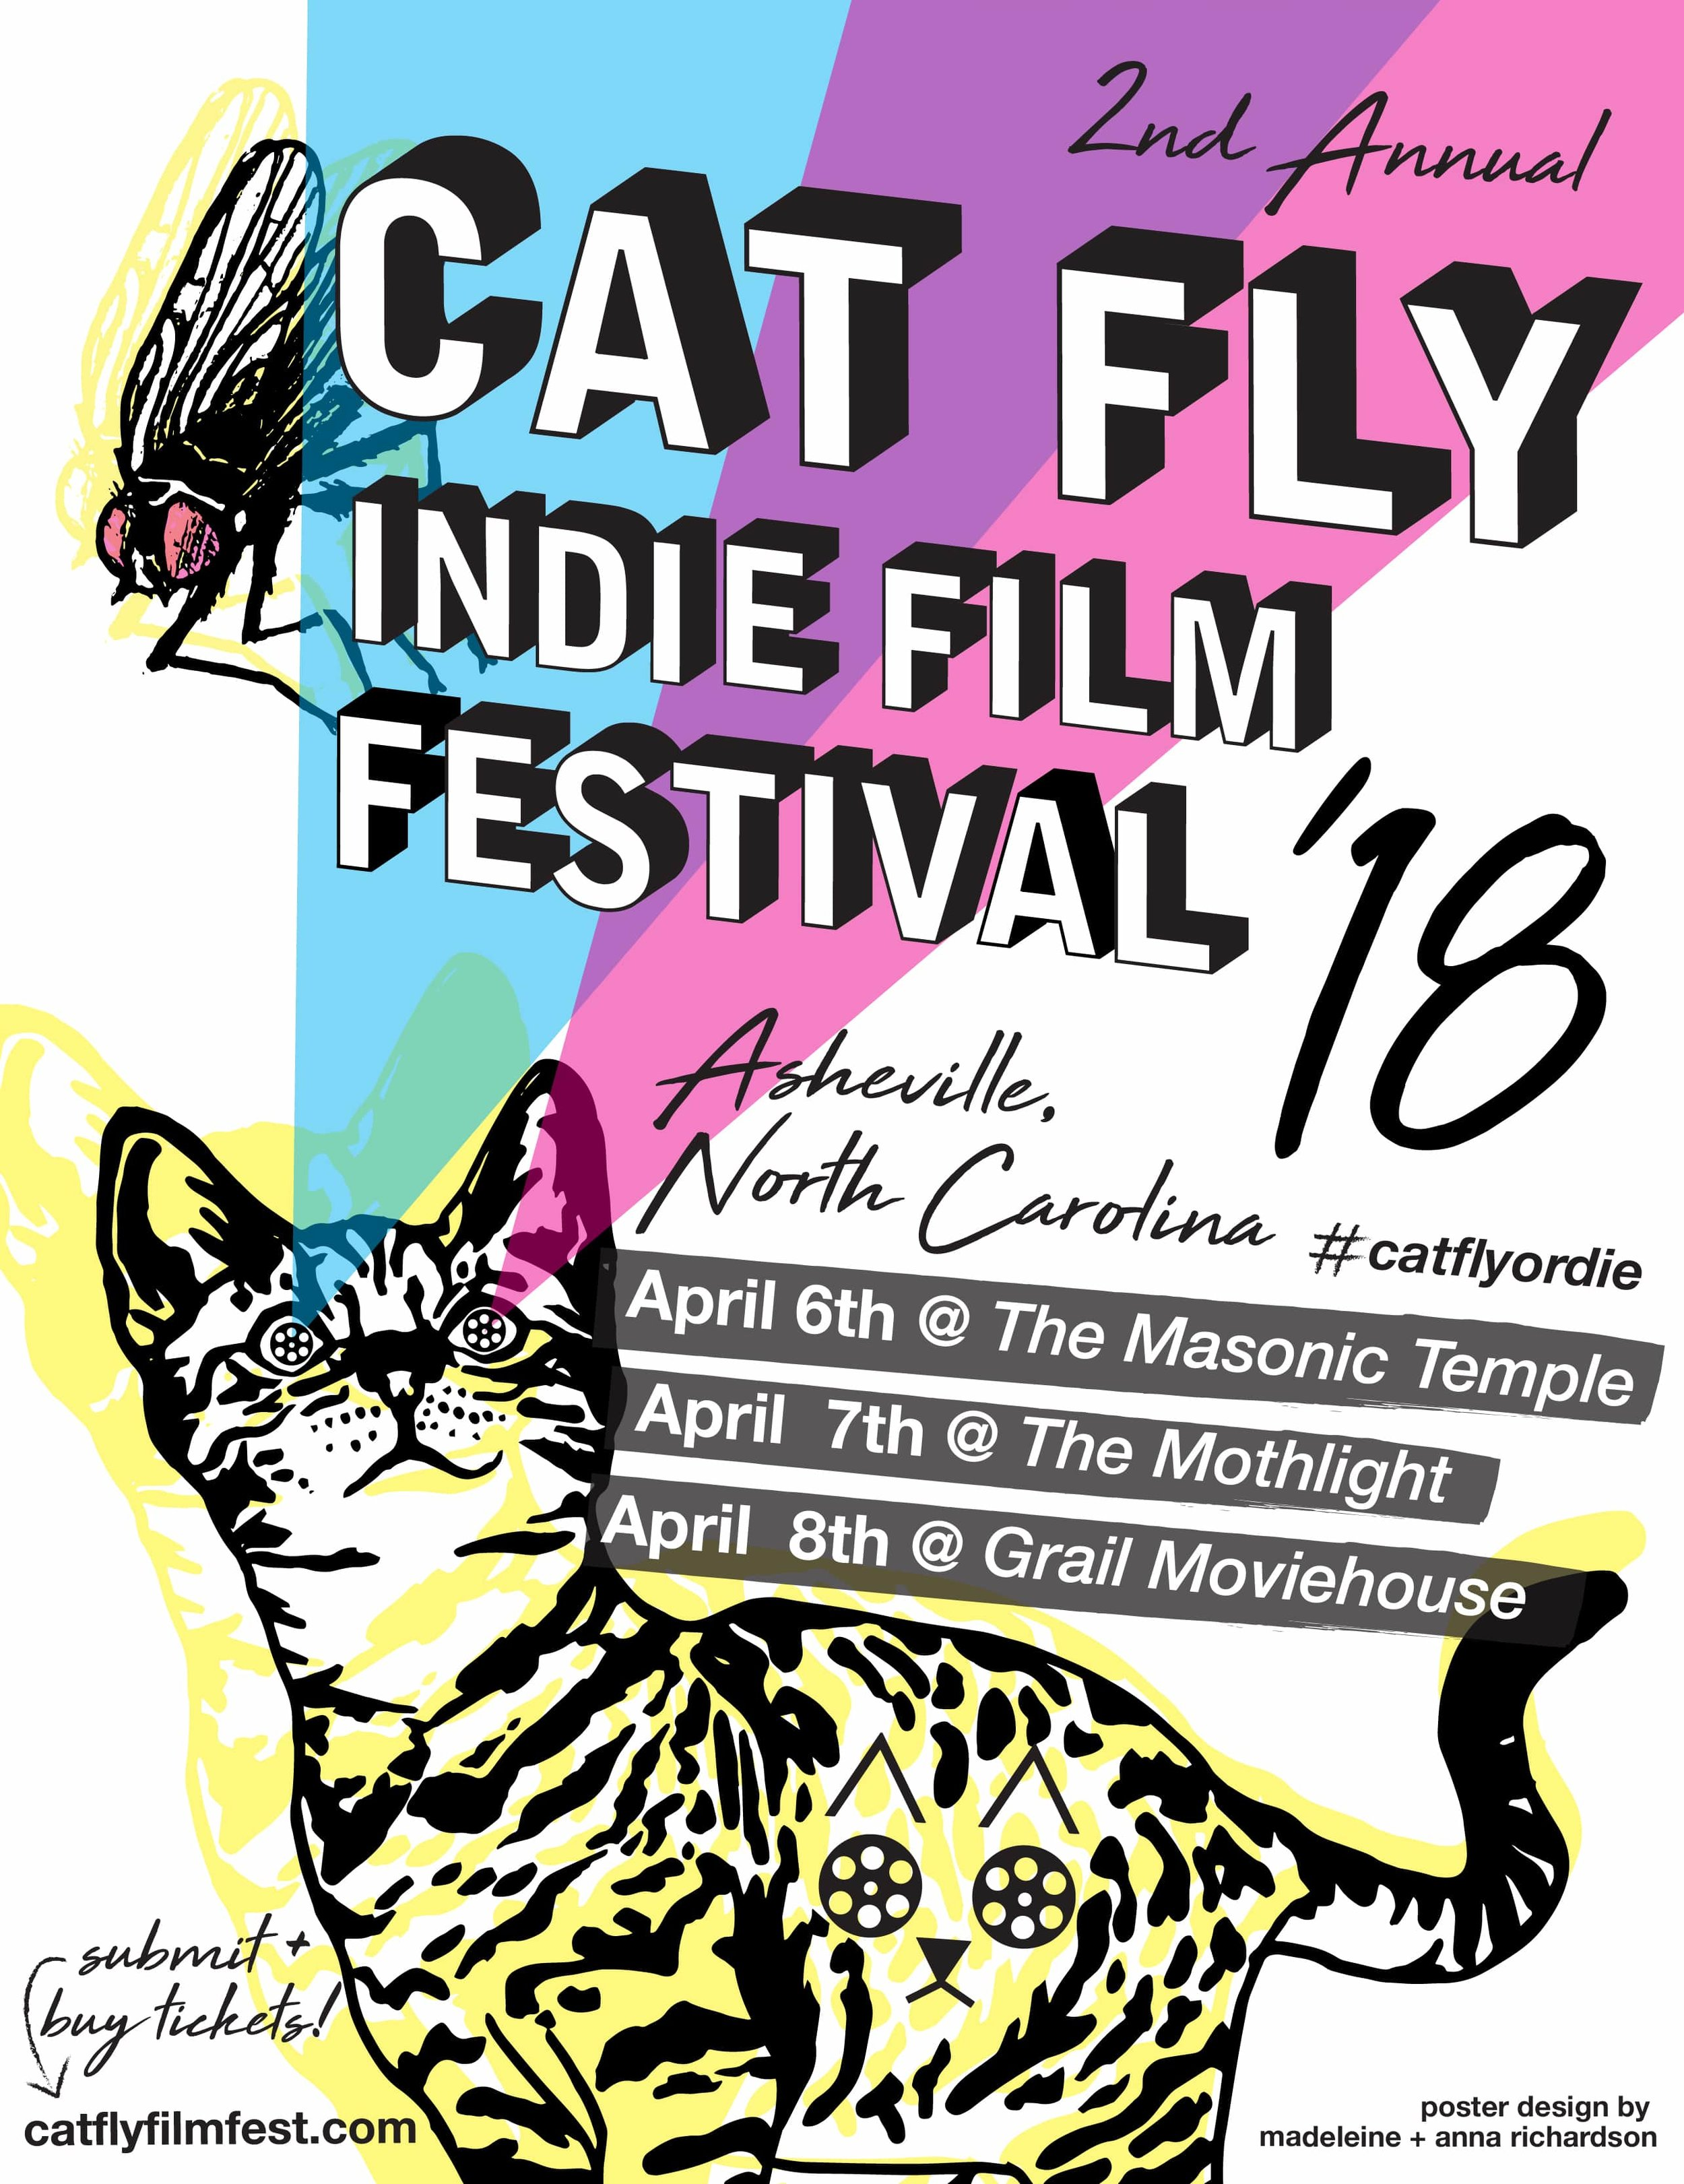 Cat-Fly-Indie-Film-Festival-ConnectBeyondFestival.jpg